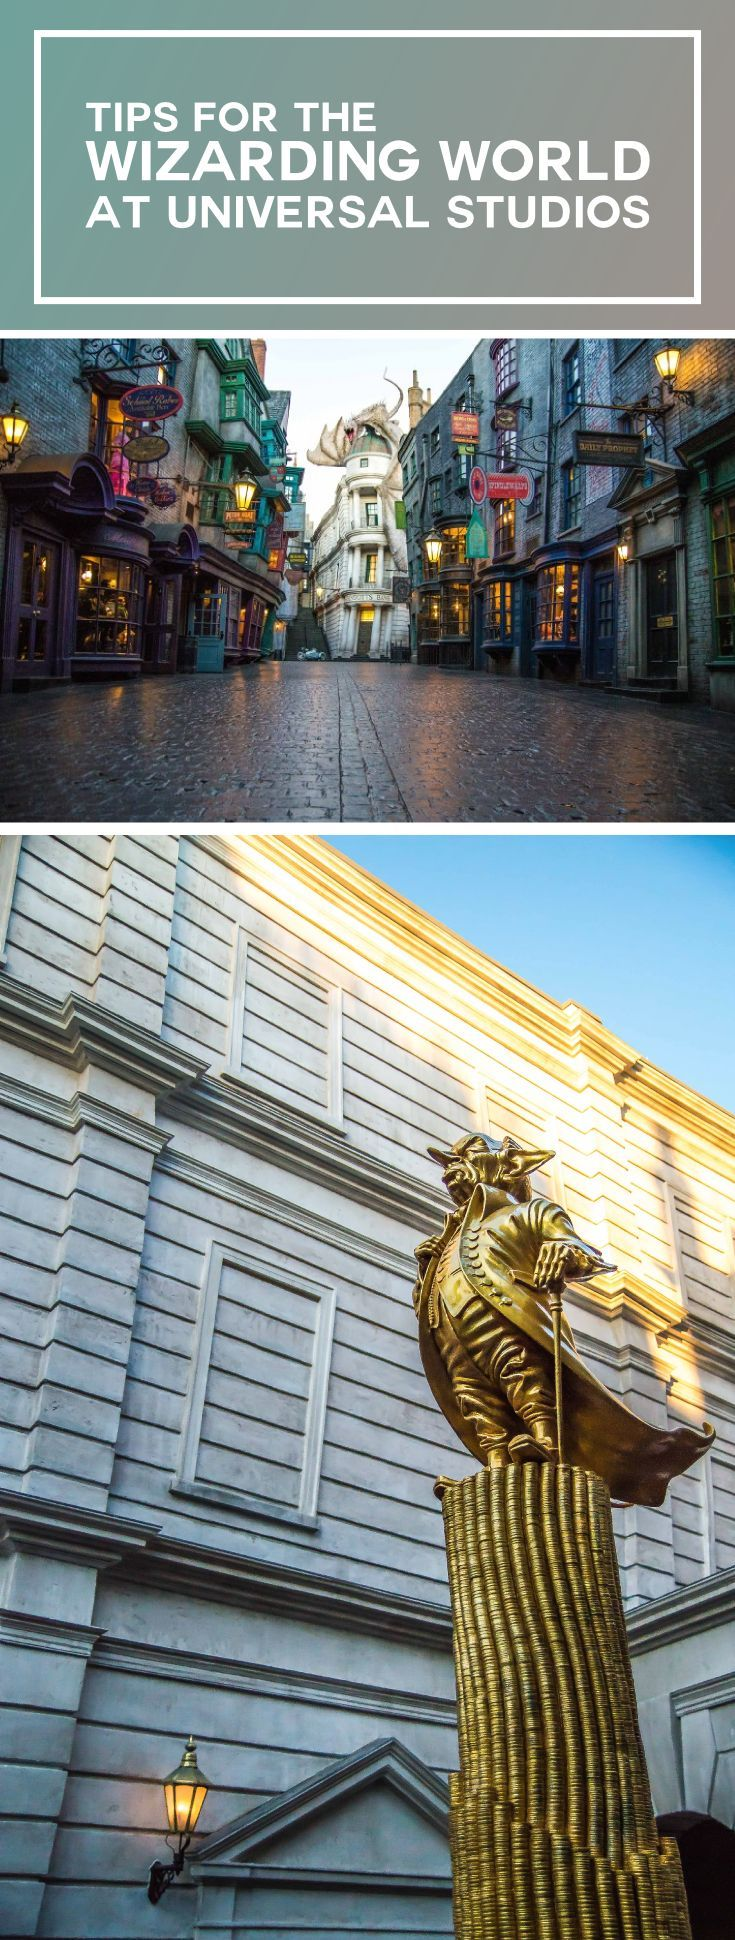 Tips for the Wizarding World at Universal Studios